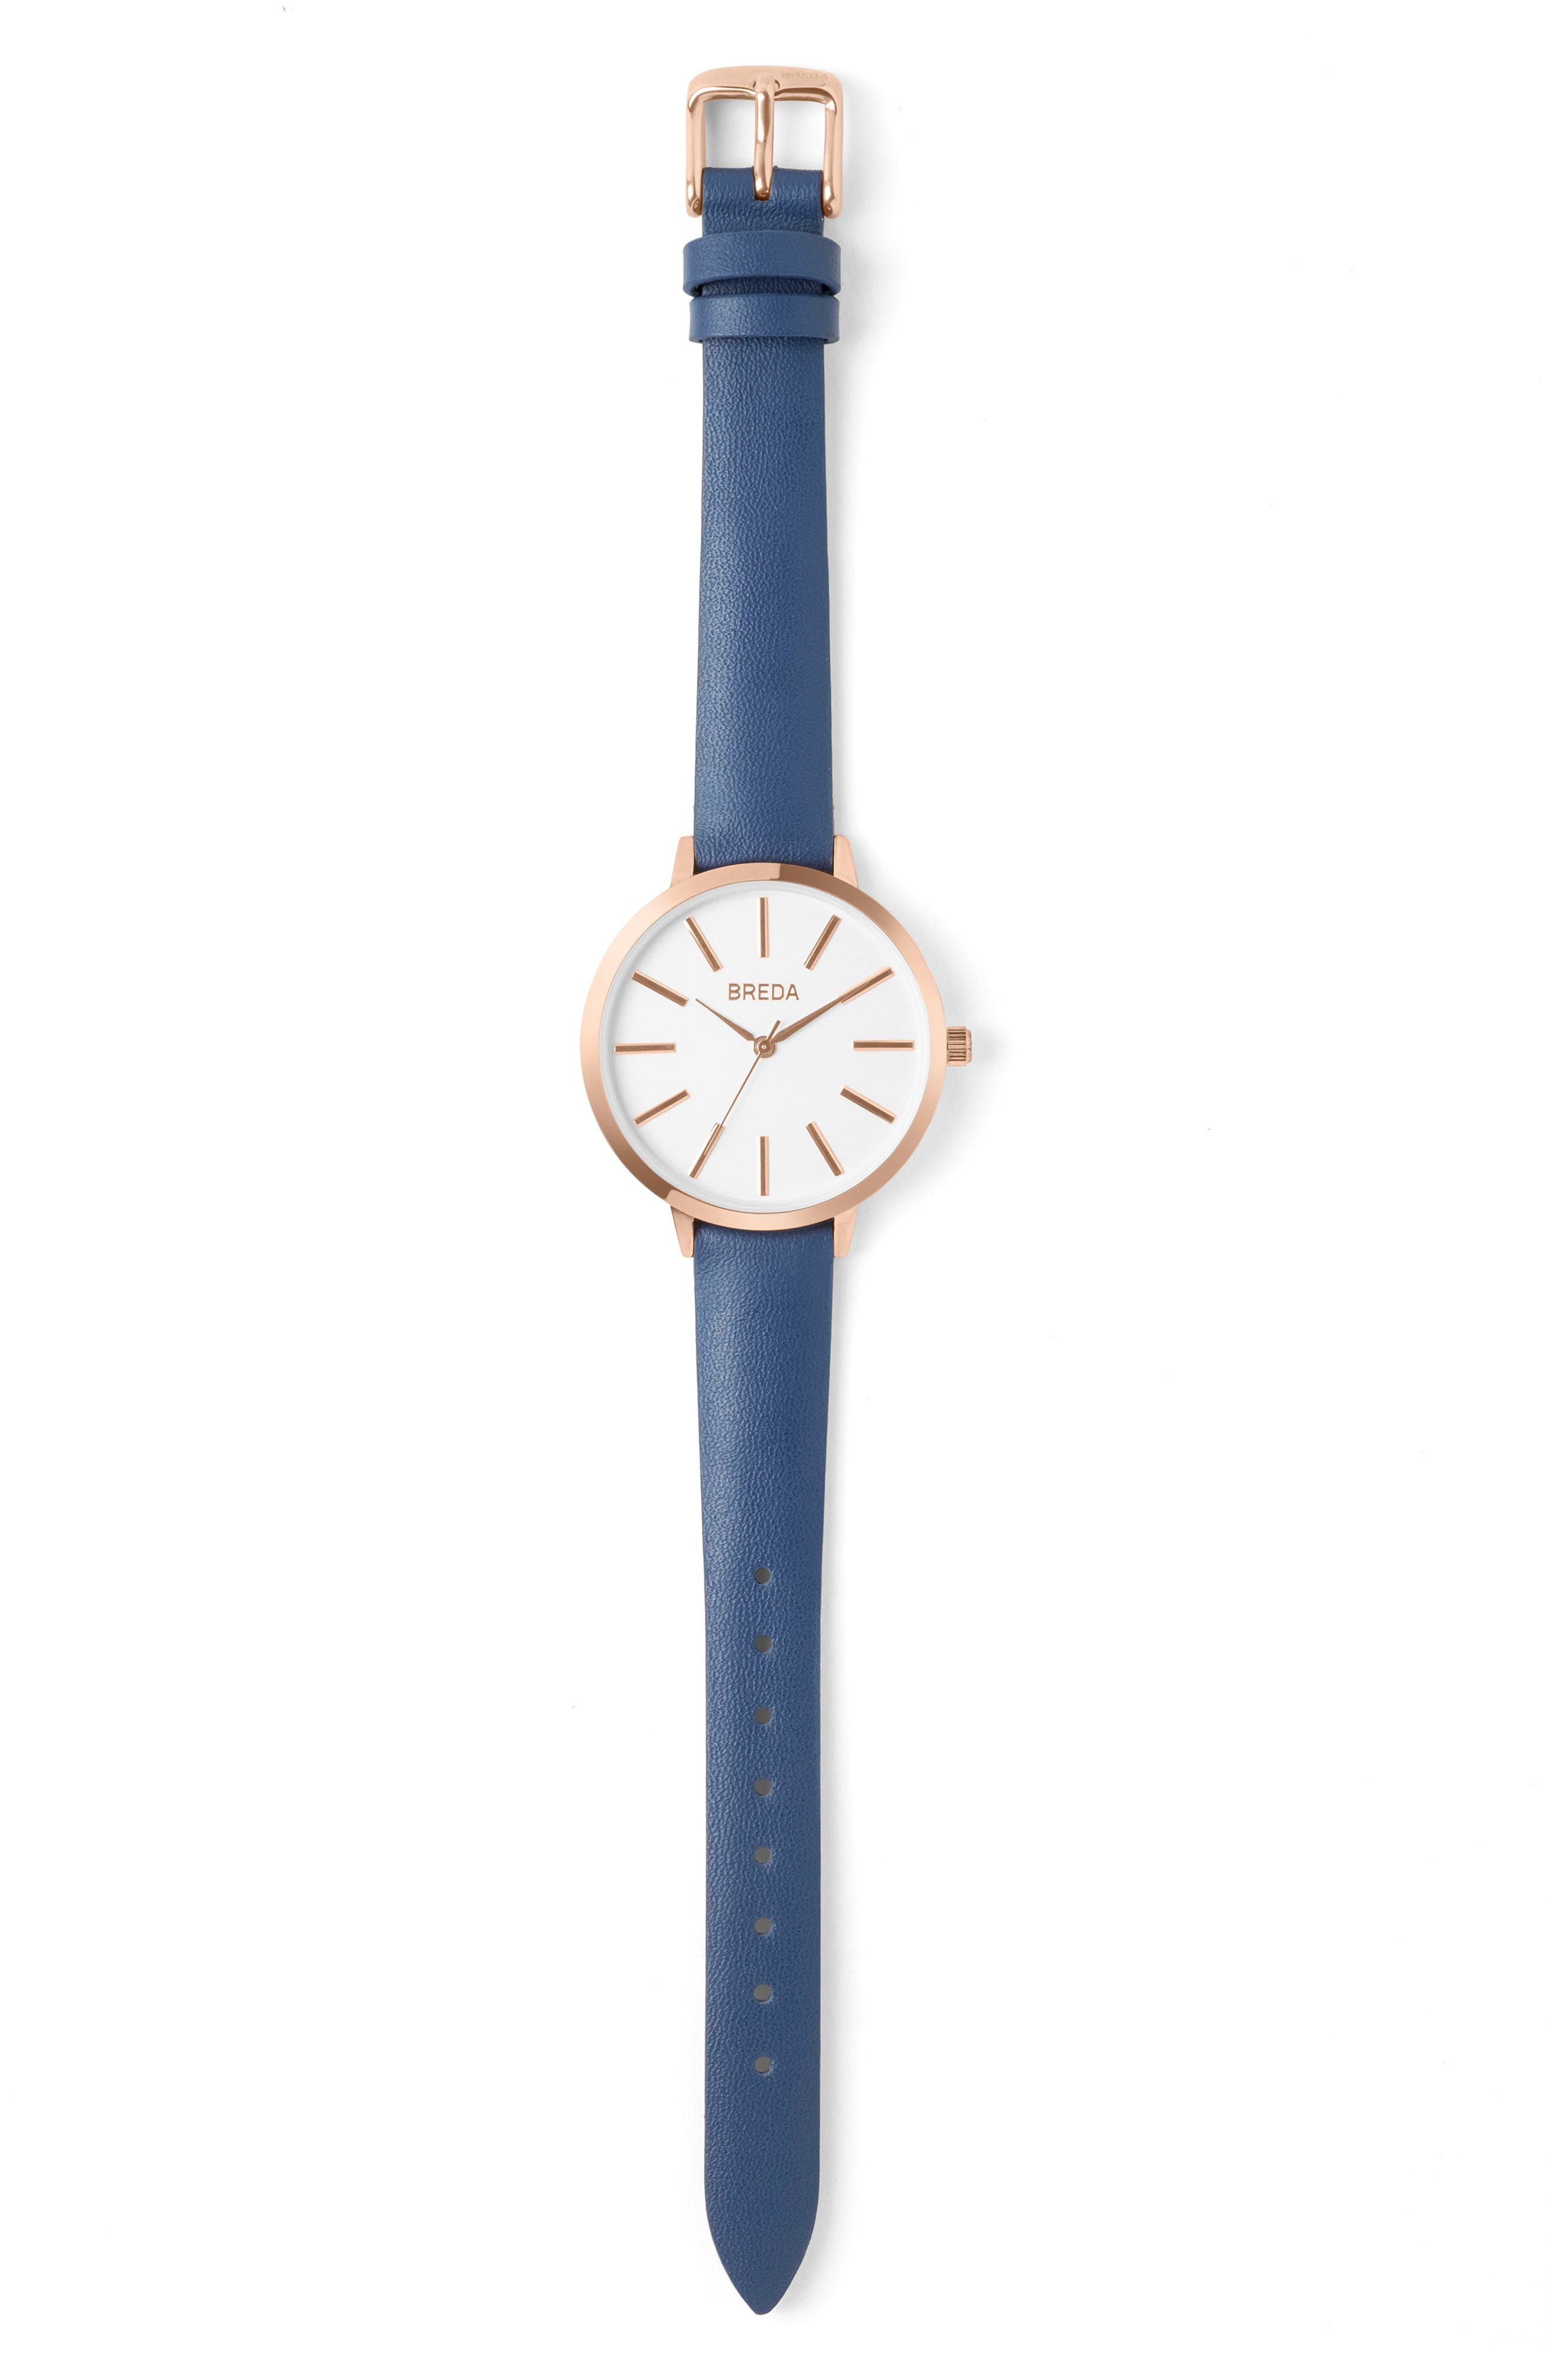 Joule Round Leather Strap Watch, 37mm,                             Alternate thumbnail 3, color,                             Navy/ White/ Rose Gold